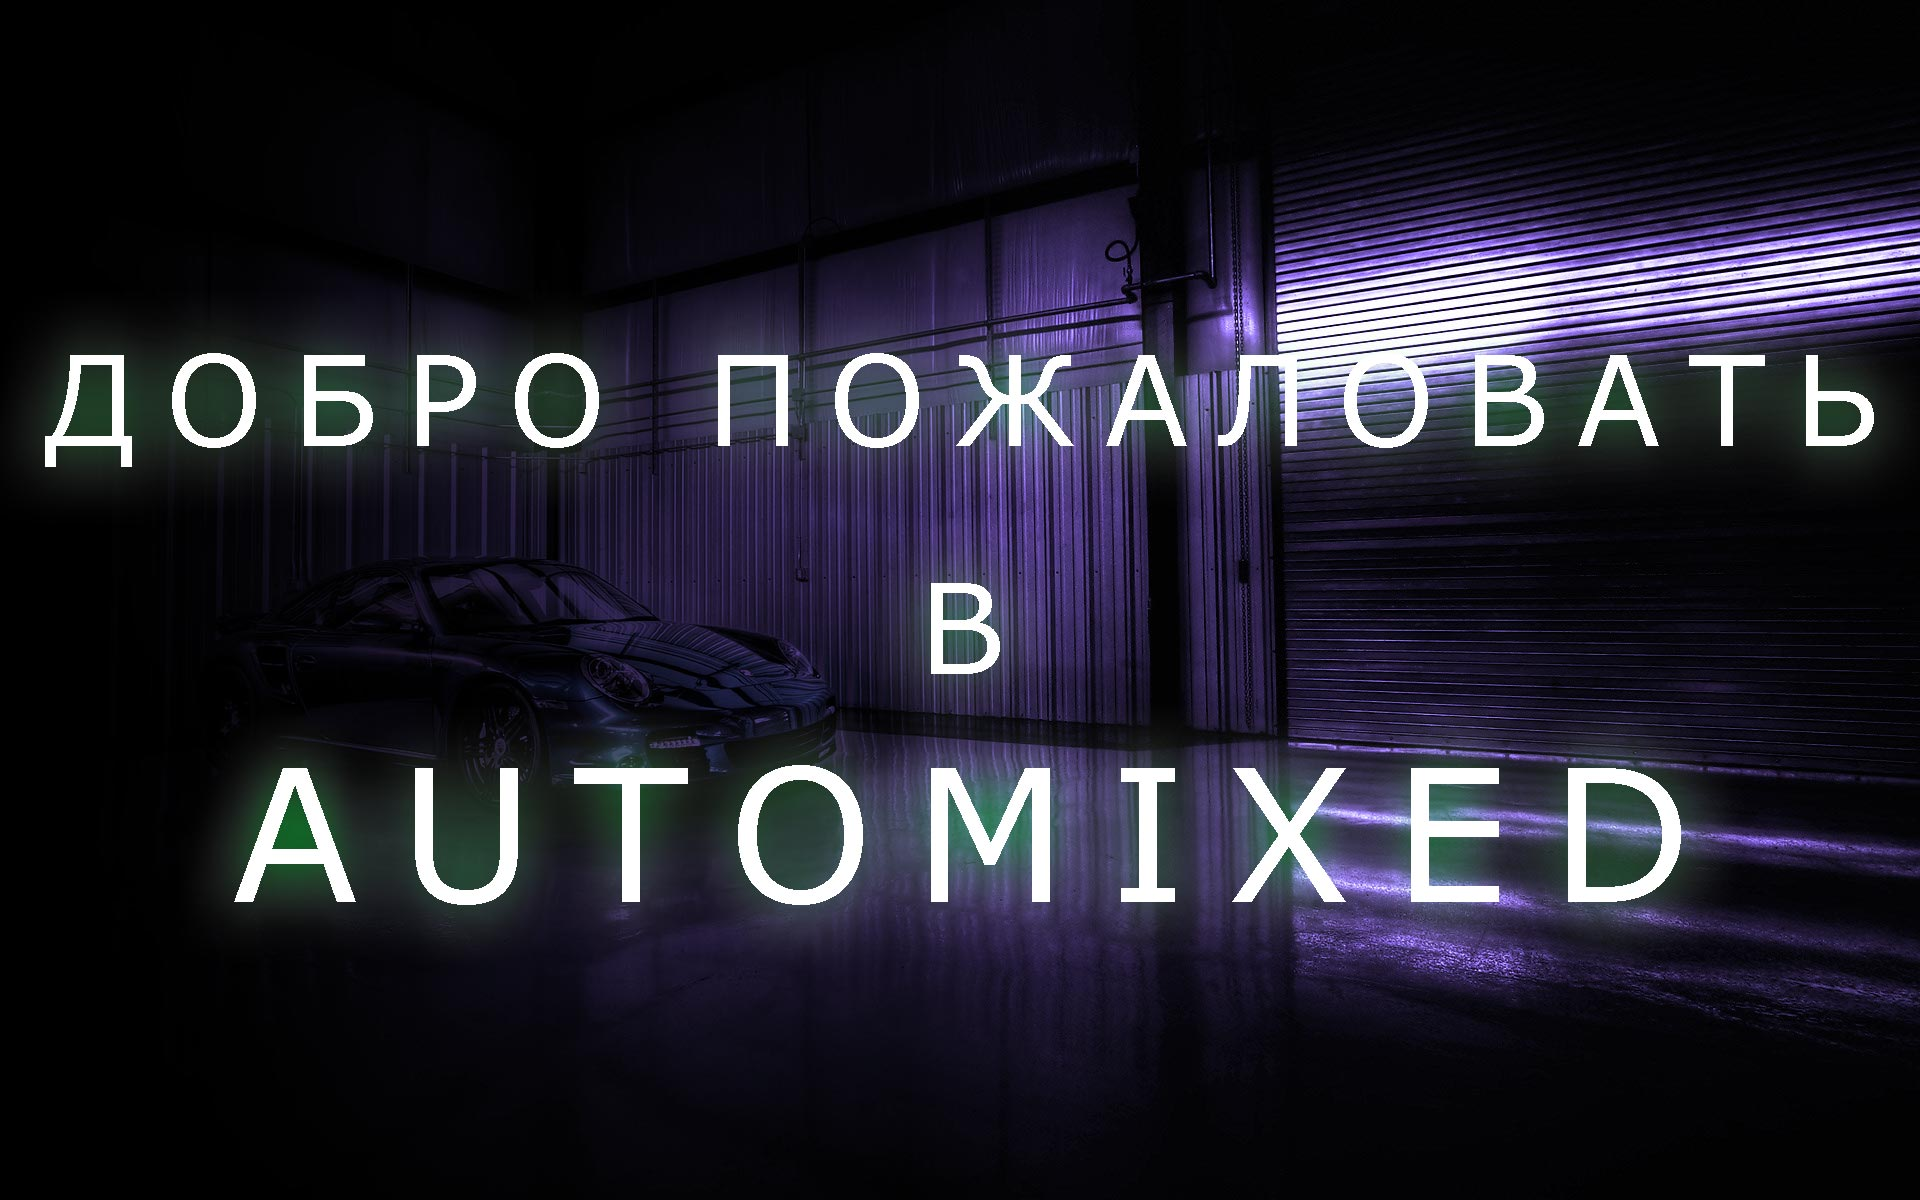 welcome to automixed